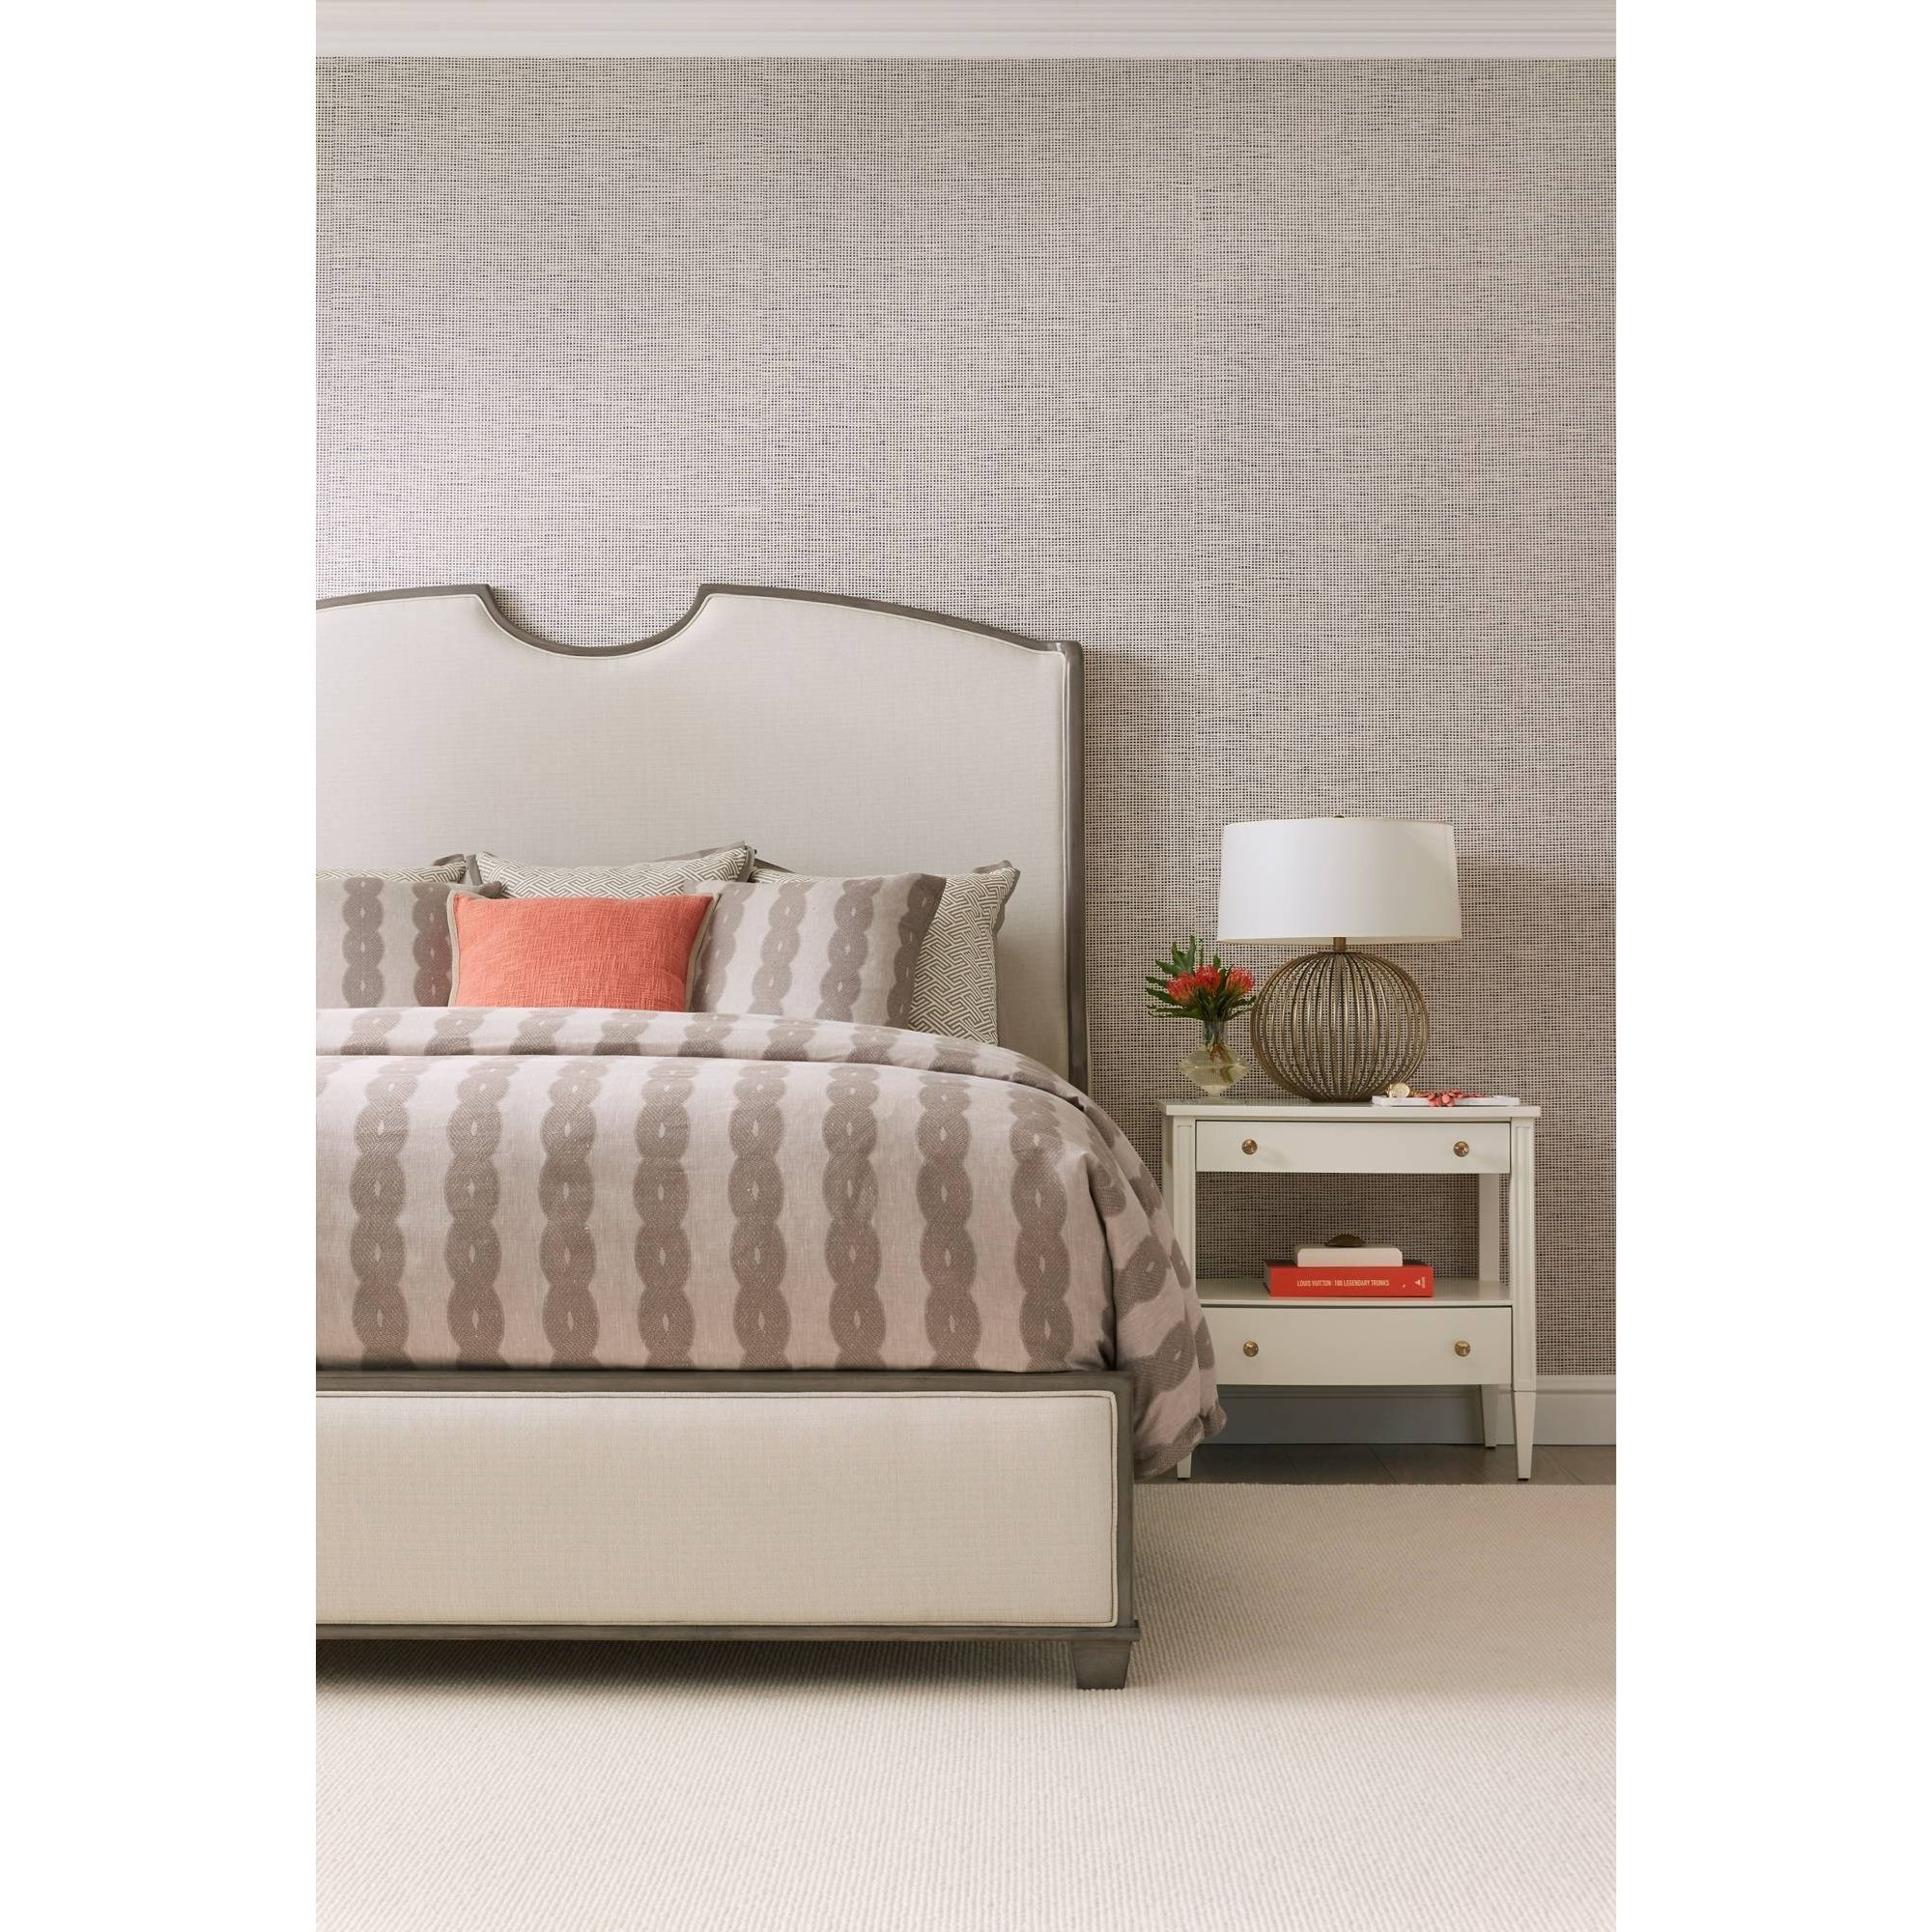 Stanley Furniture Coastal Living Oasis King Bedroom Group - Item Number: 527-6 K Bedroom Group 3